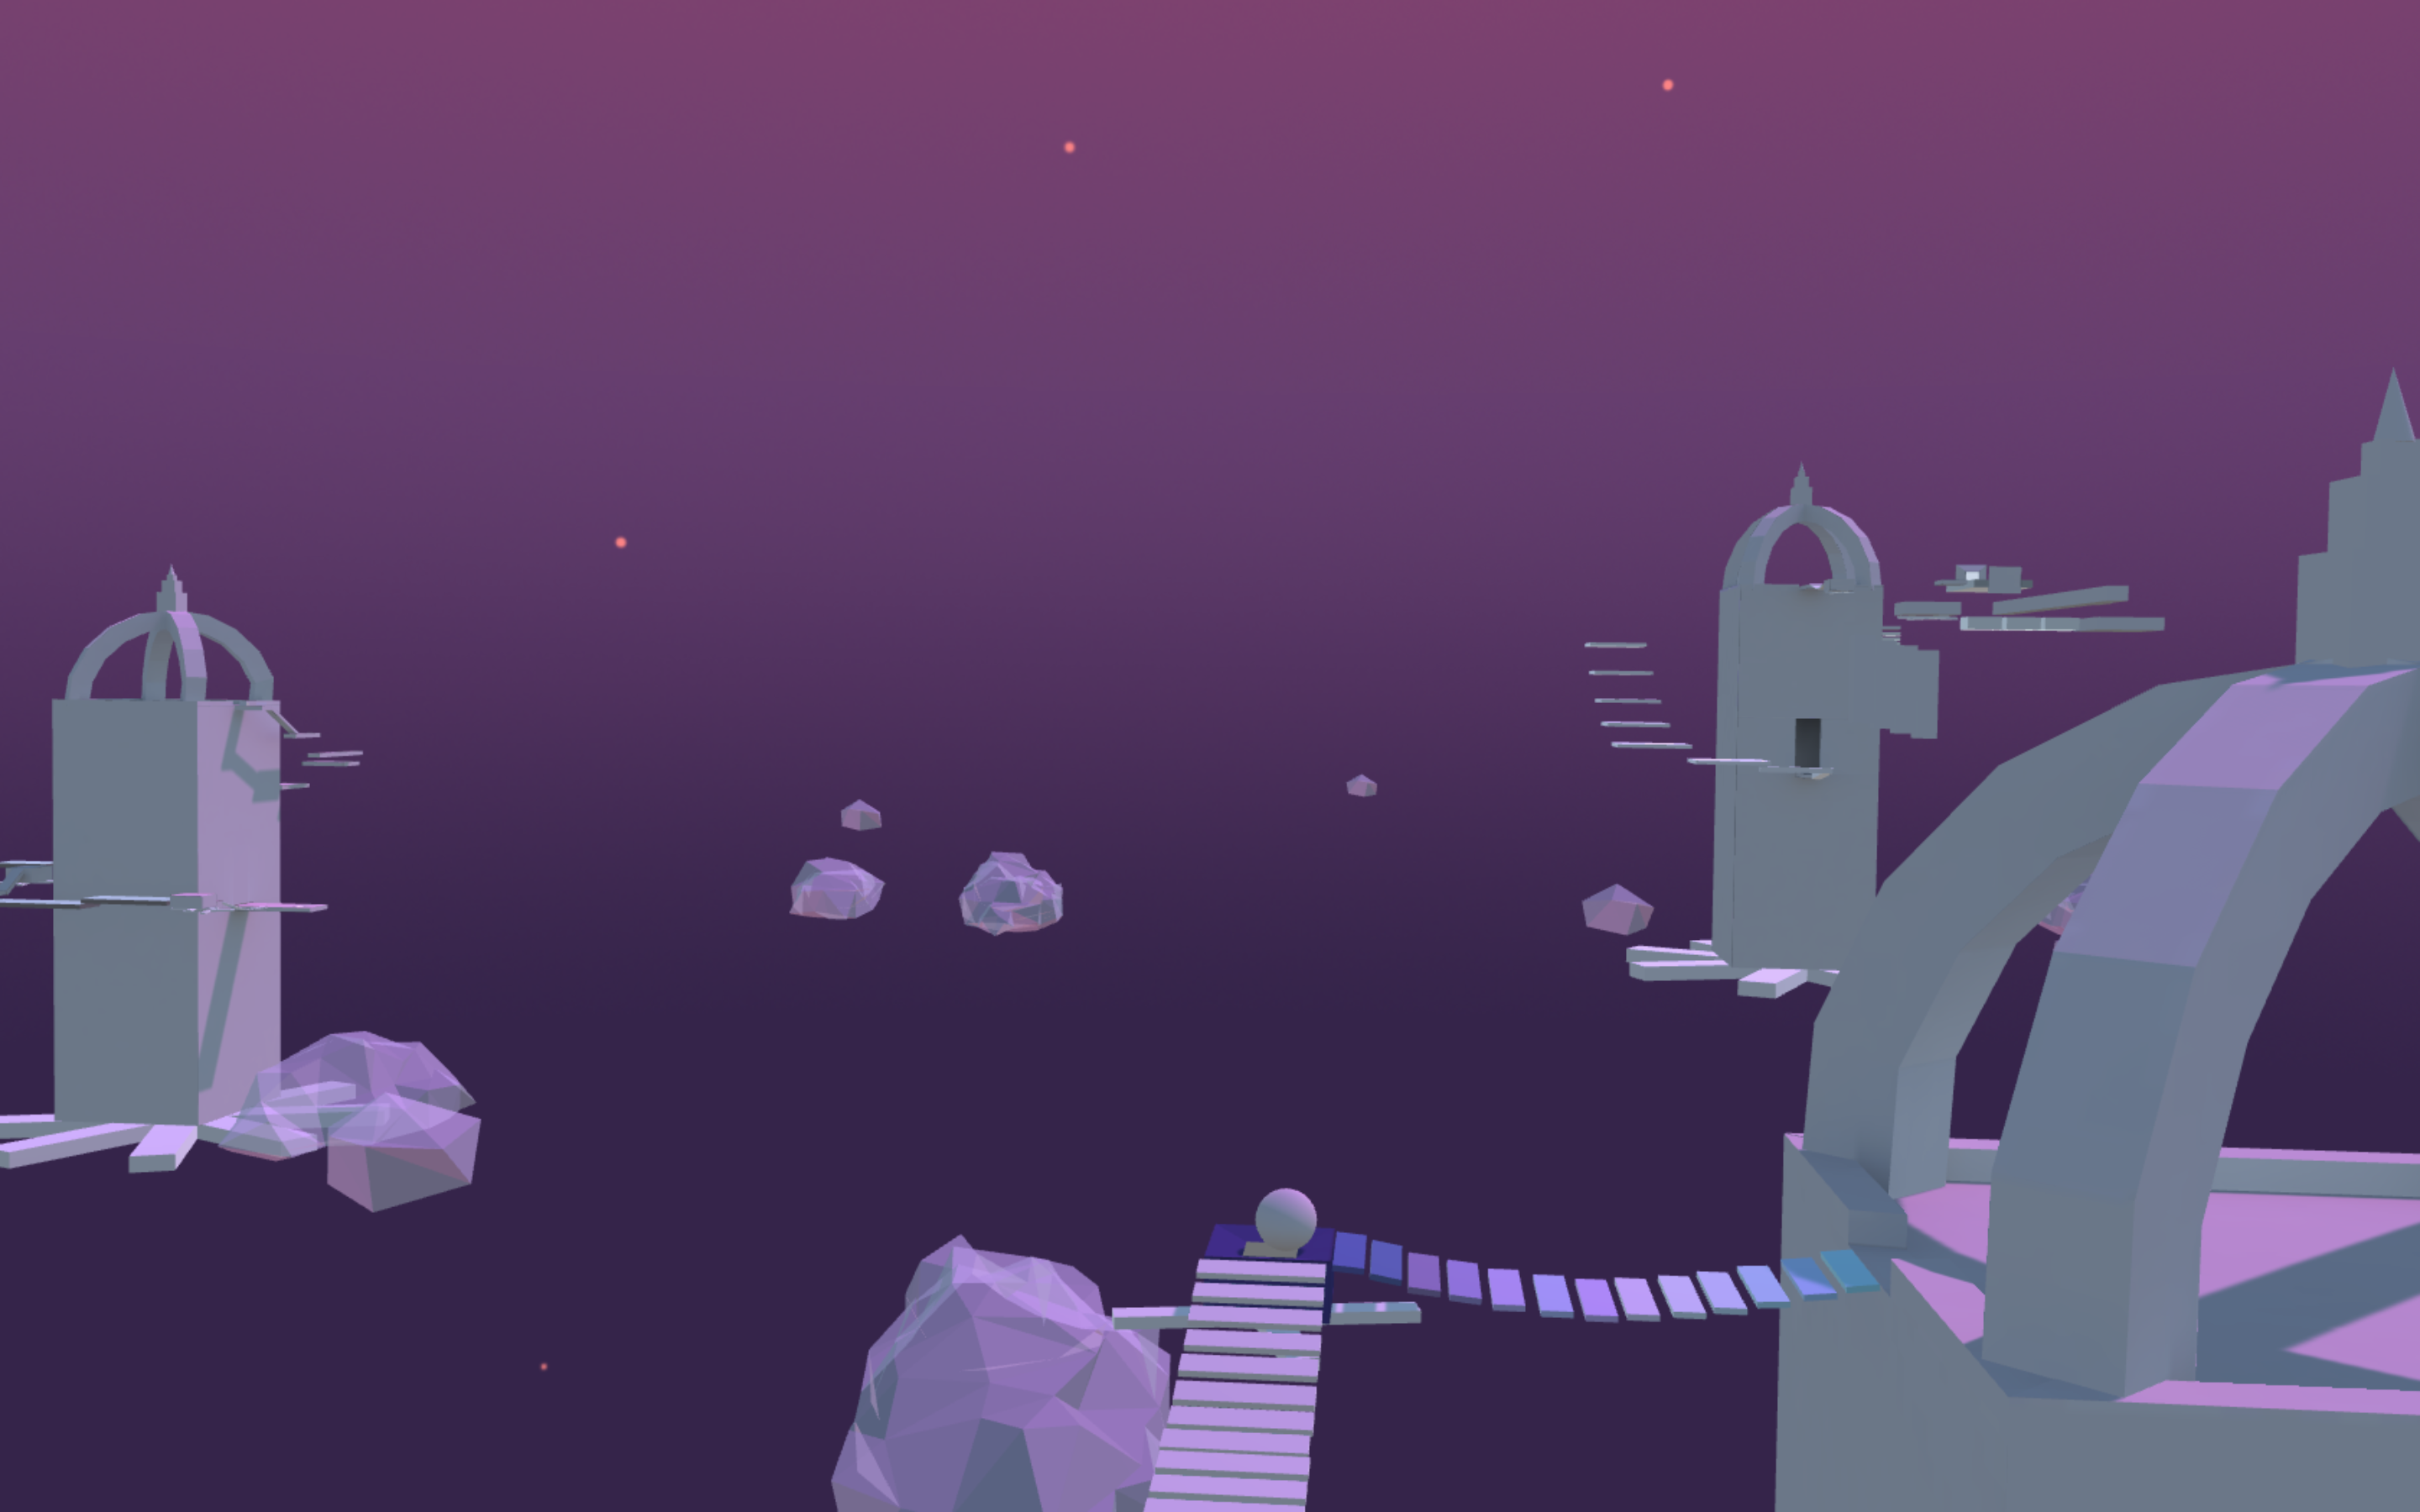 Screenshot from the game, featuring floating temples and suspended bridges.